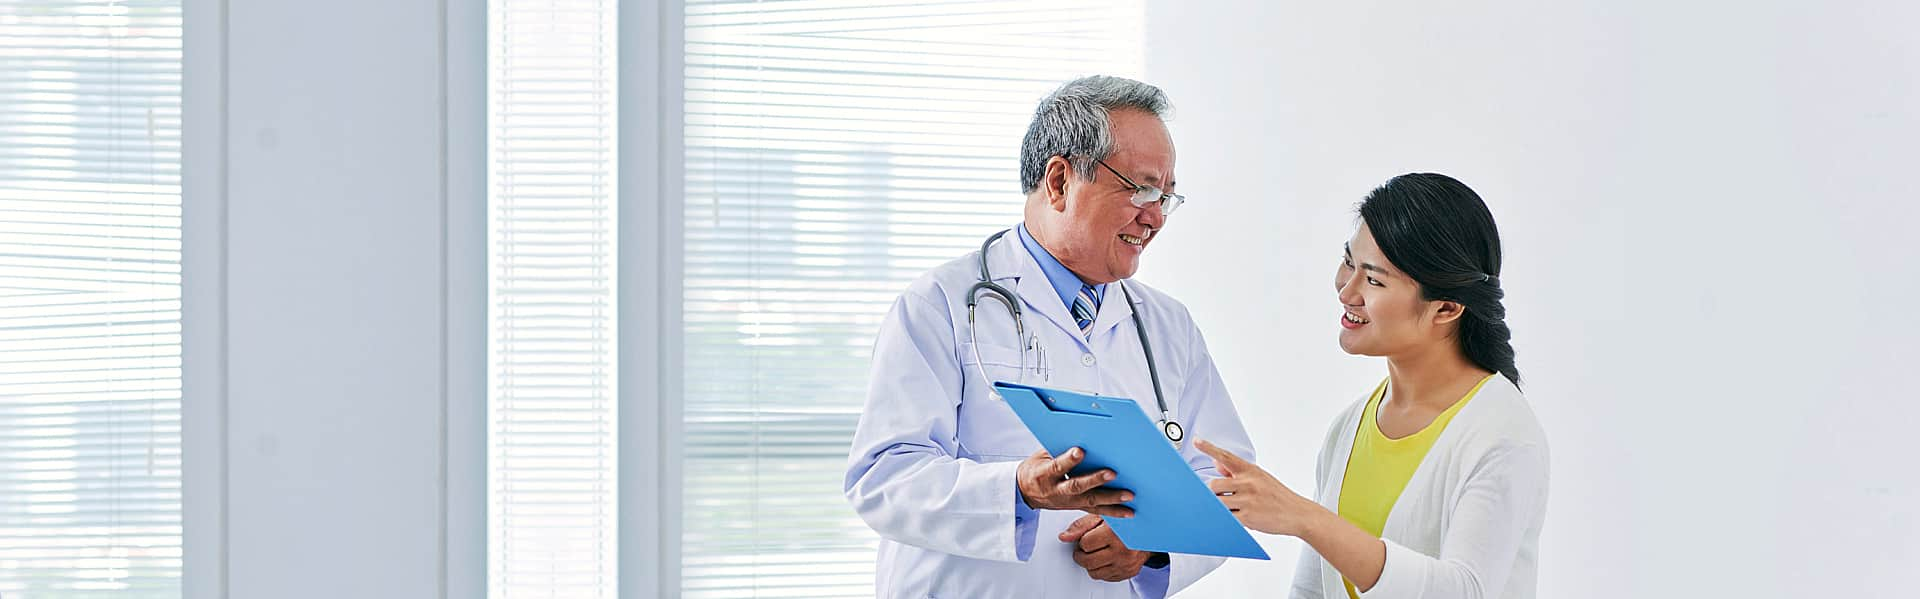 male doctor and a female nurse having a conversation